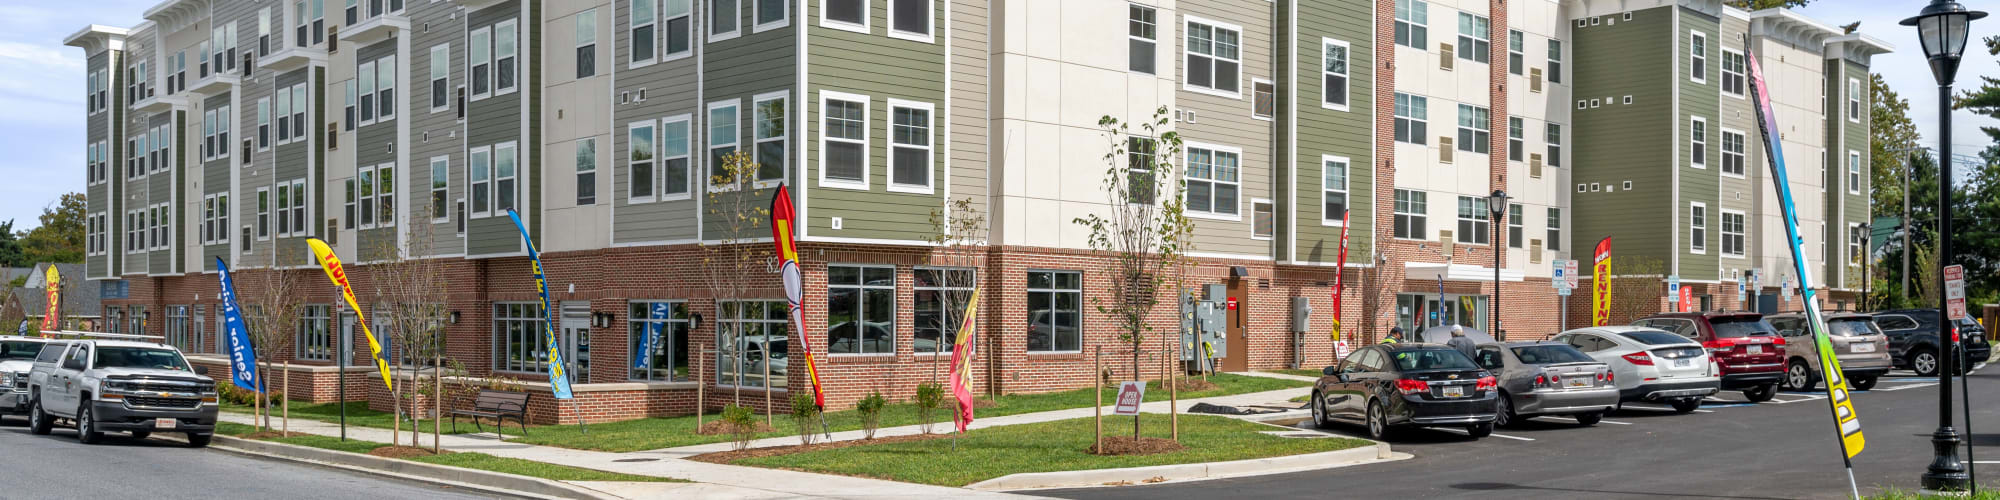 Photos of The Apartments at Sharpe Square in Frederick, Maryland